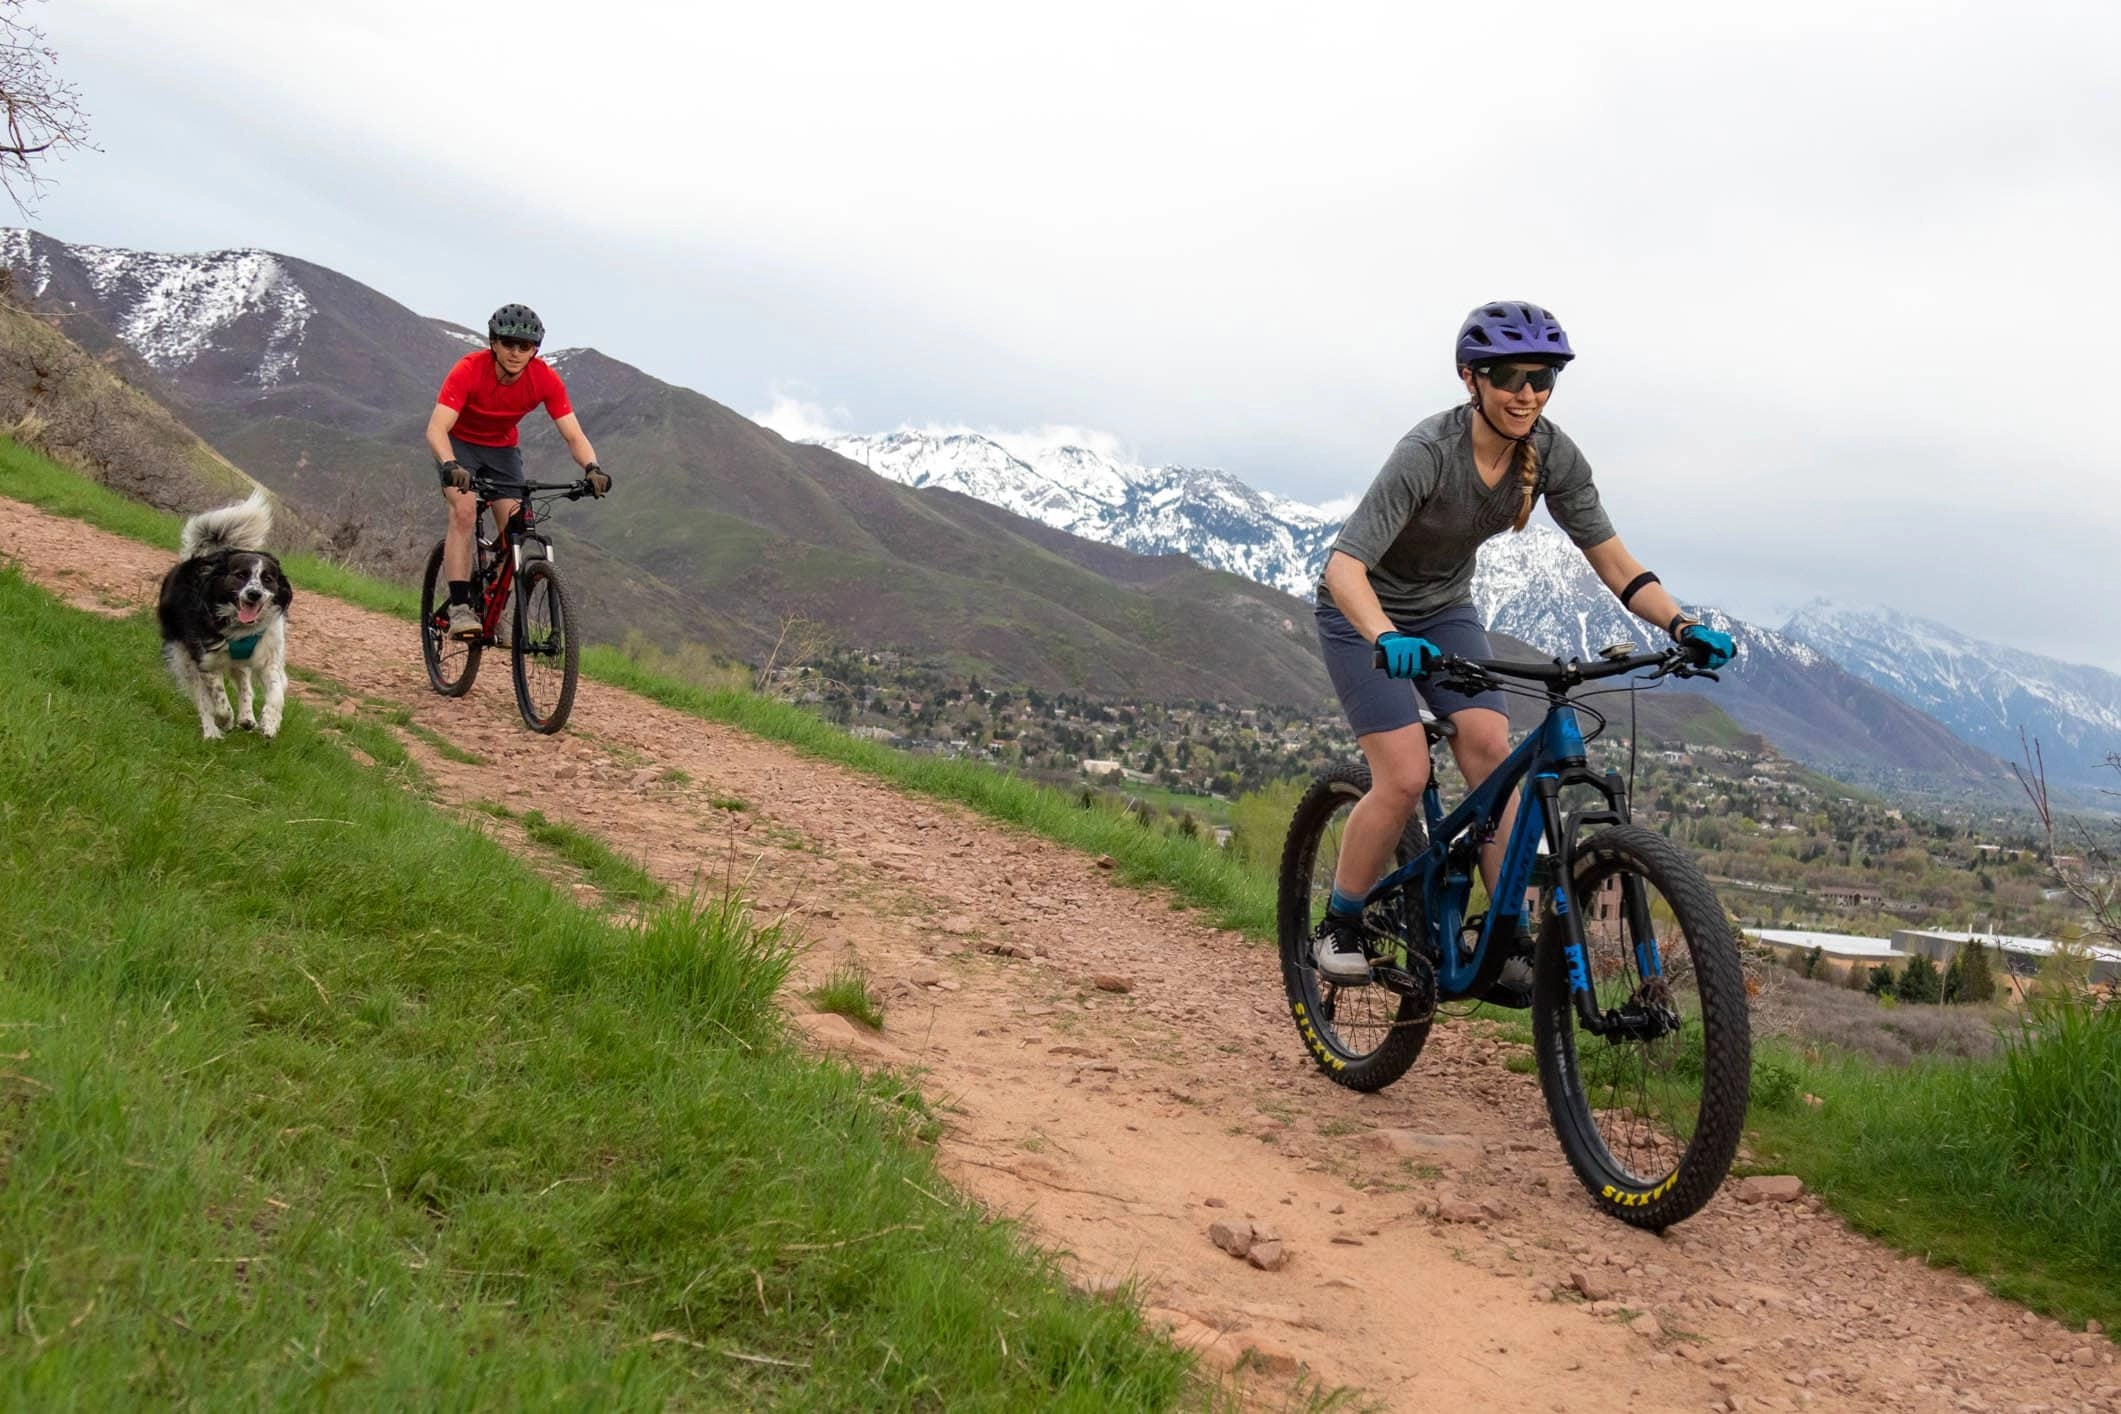 mountain biking in the wasatch range of utah